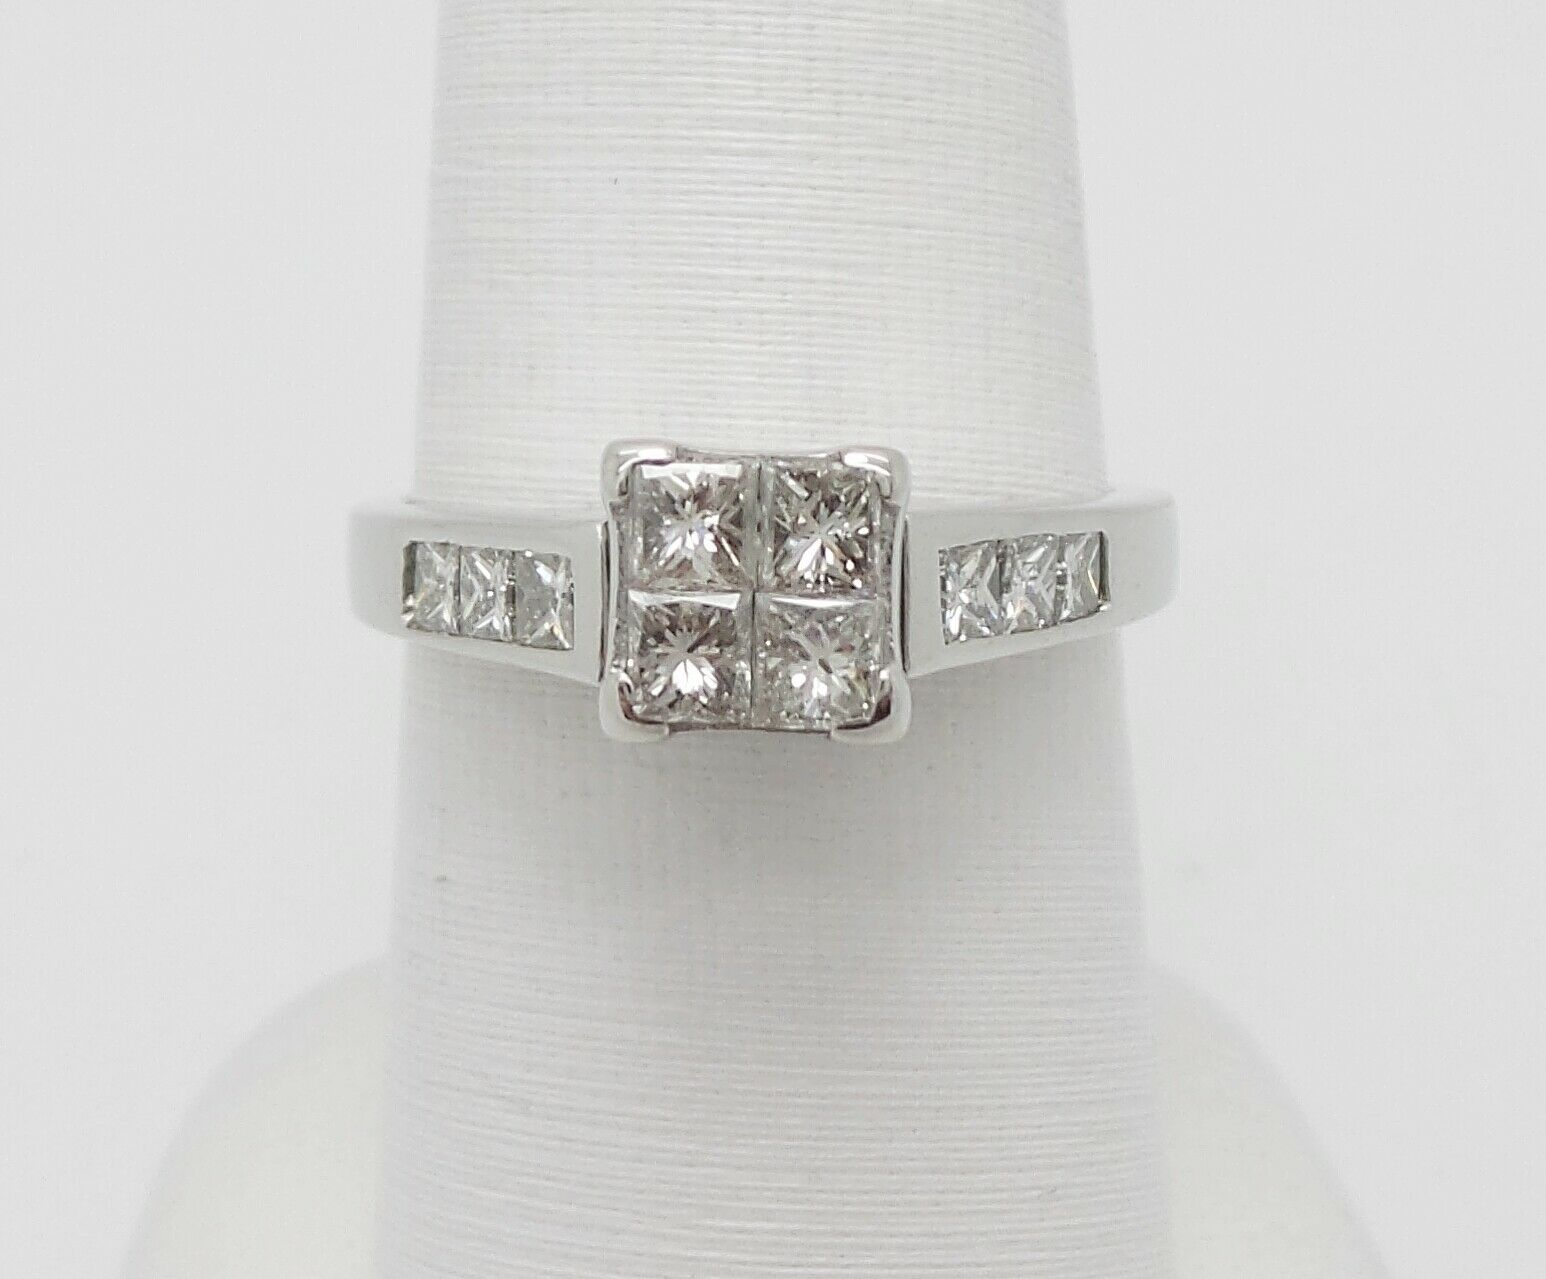 1CT PRINCESS DIAMOND SOLITAIRE ENGAGEMENT WEDDING BRIDAL RING 18K WHITE gold